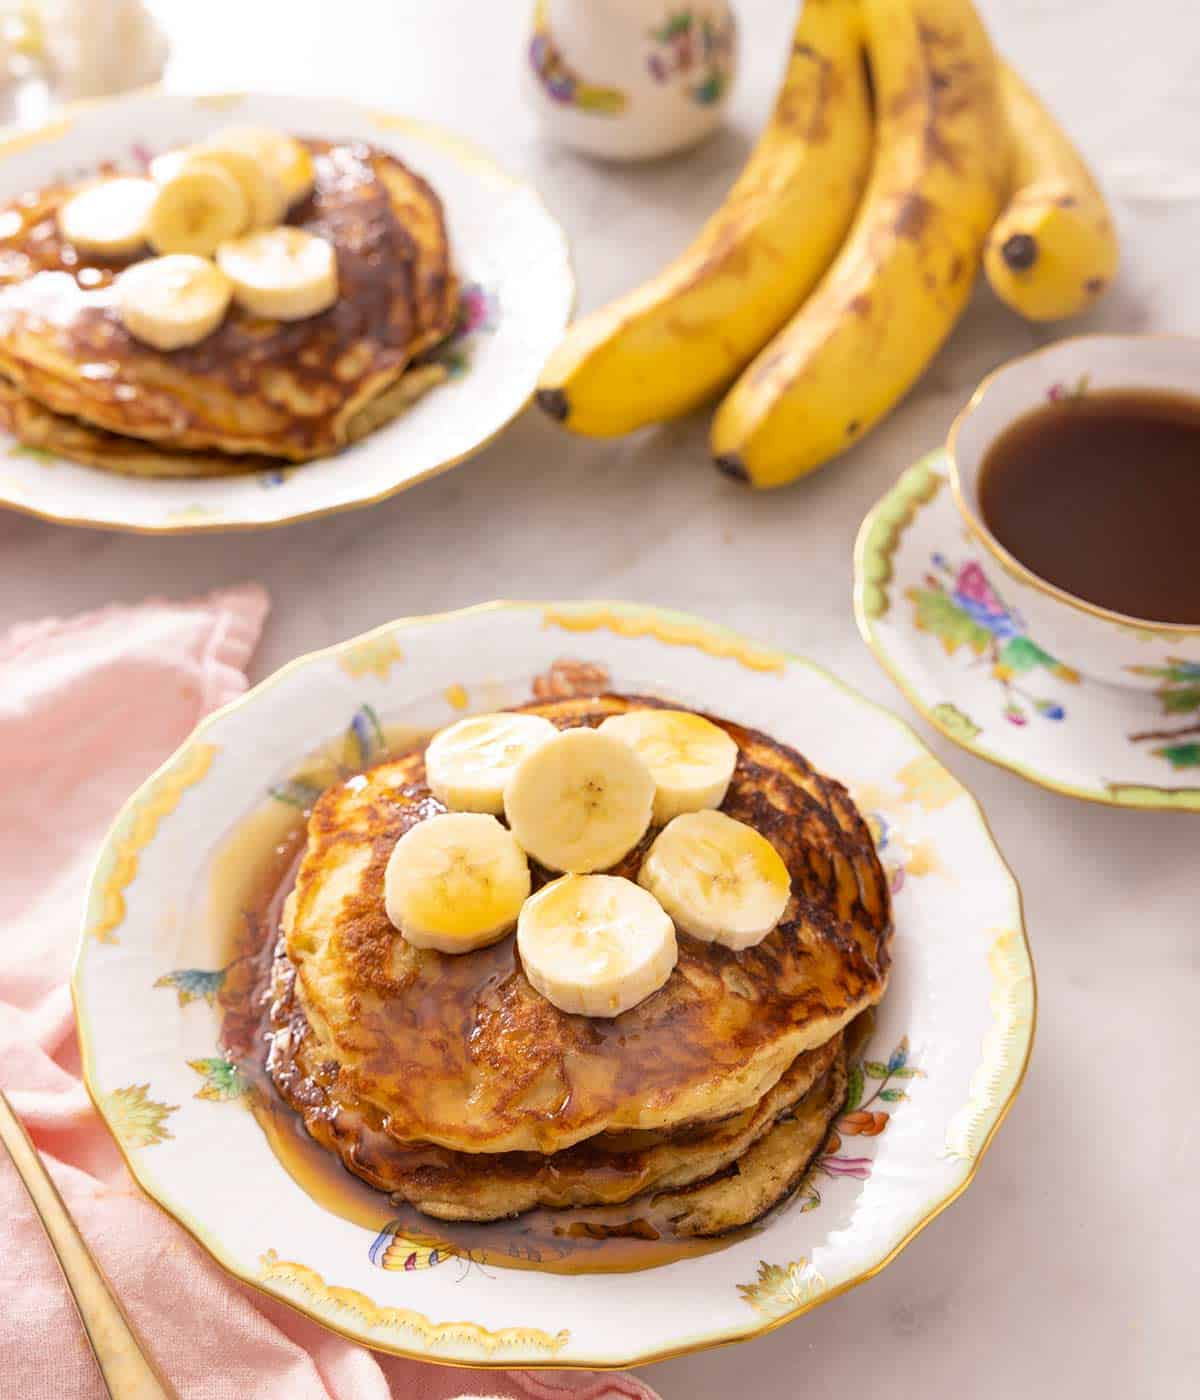 Banana pancakes on a plate topped with slices of banana